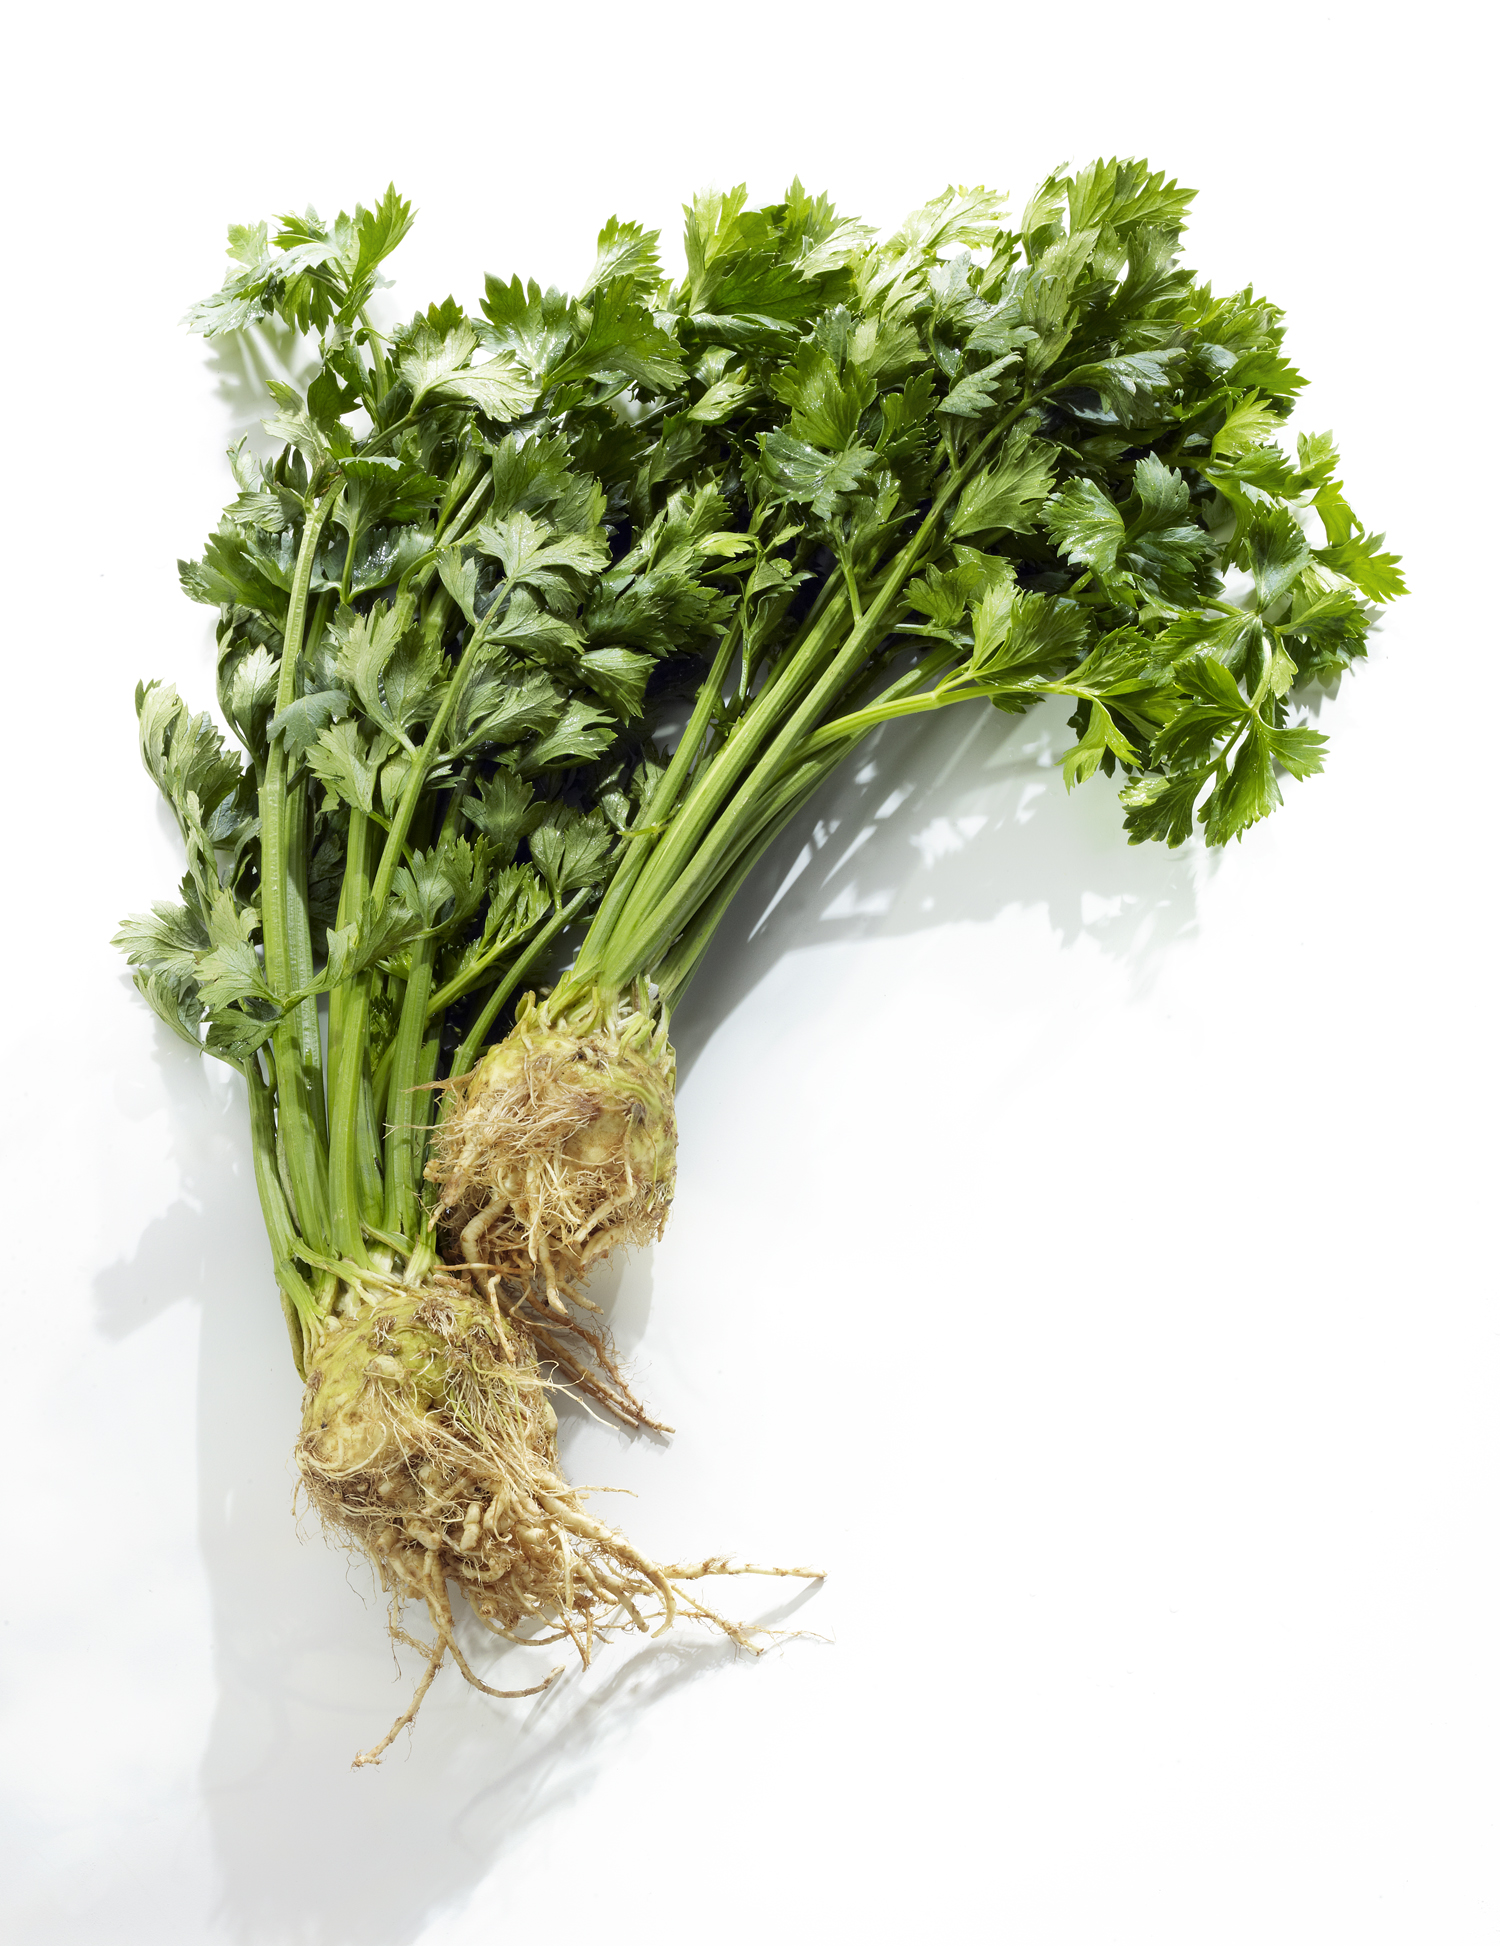 Celeriac Roots  Photo by David Bishop